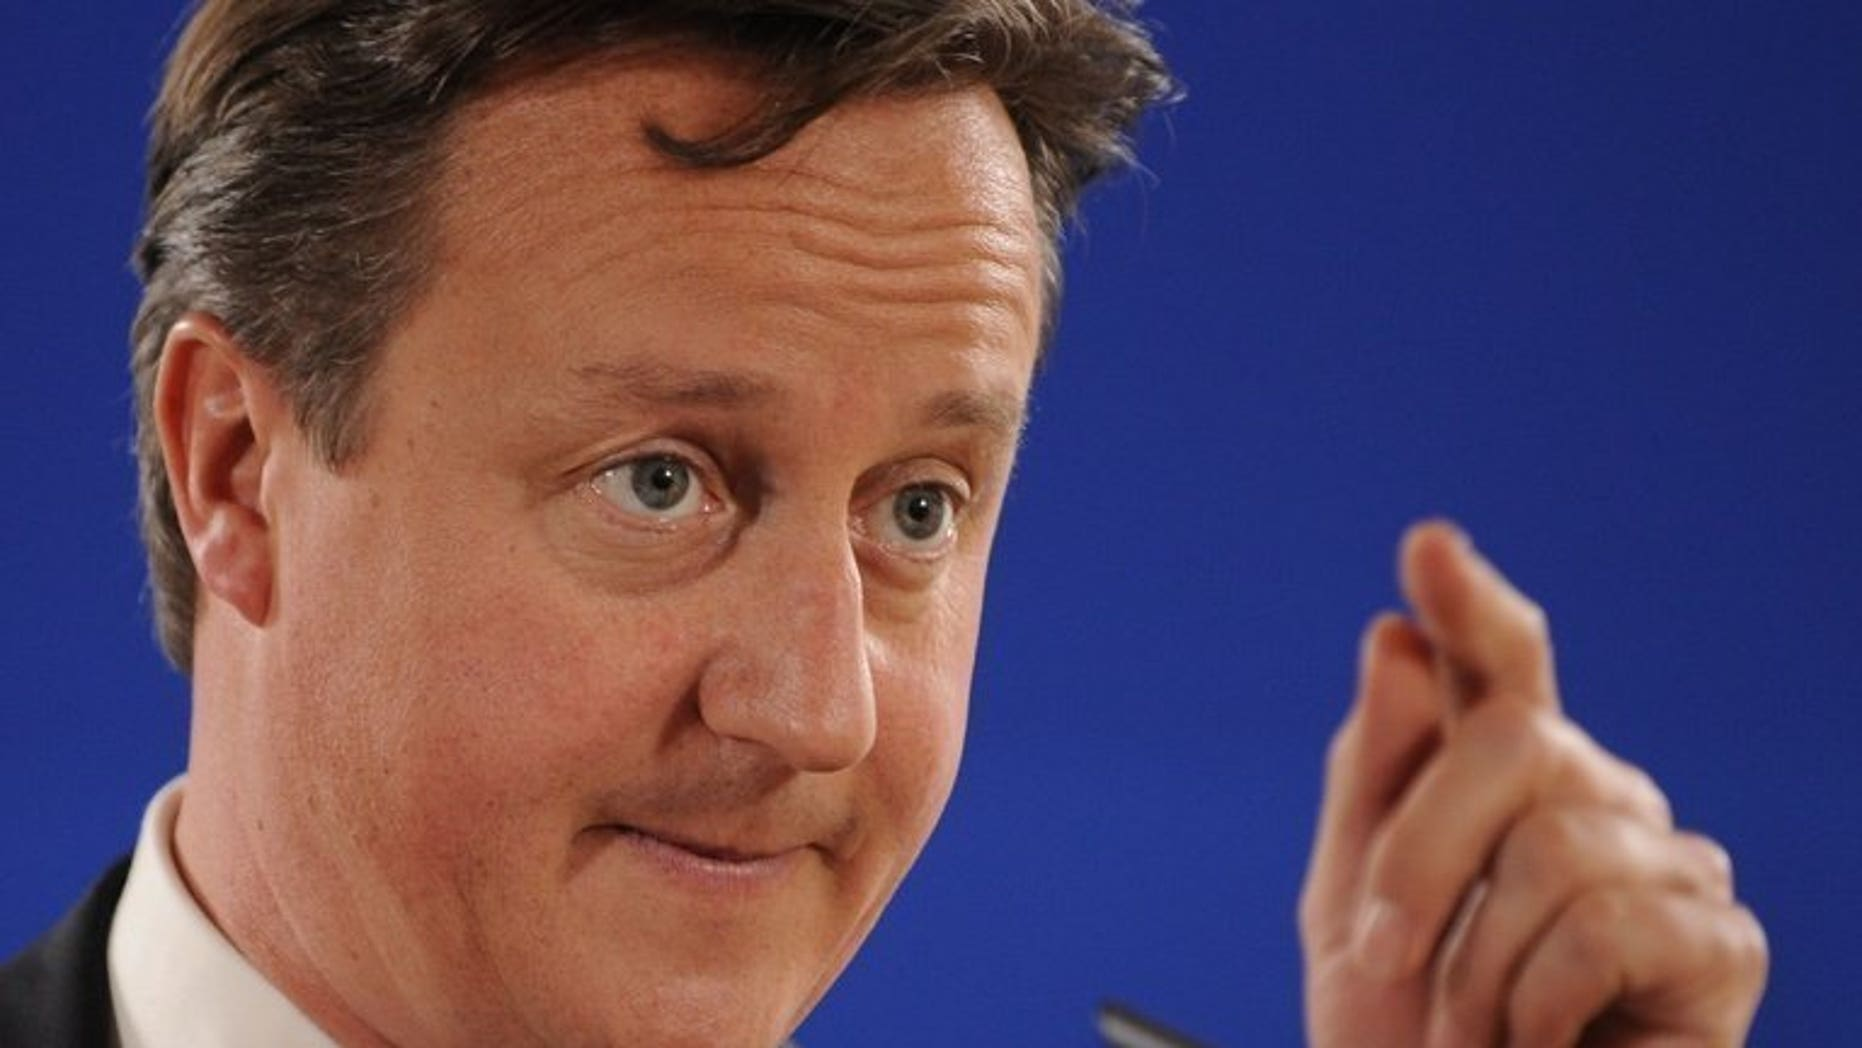 British Prime Minister David Cameron attends a press conference after the European Union leaders summit at the EU headquarters in Brussels on June 28, 2013. Cameron has called for a cut in the cost of Westminster politics after reports that MPs could be in line for a salary hike of more than 10%.